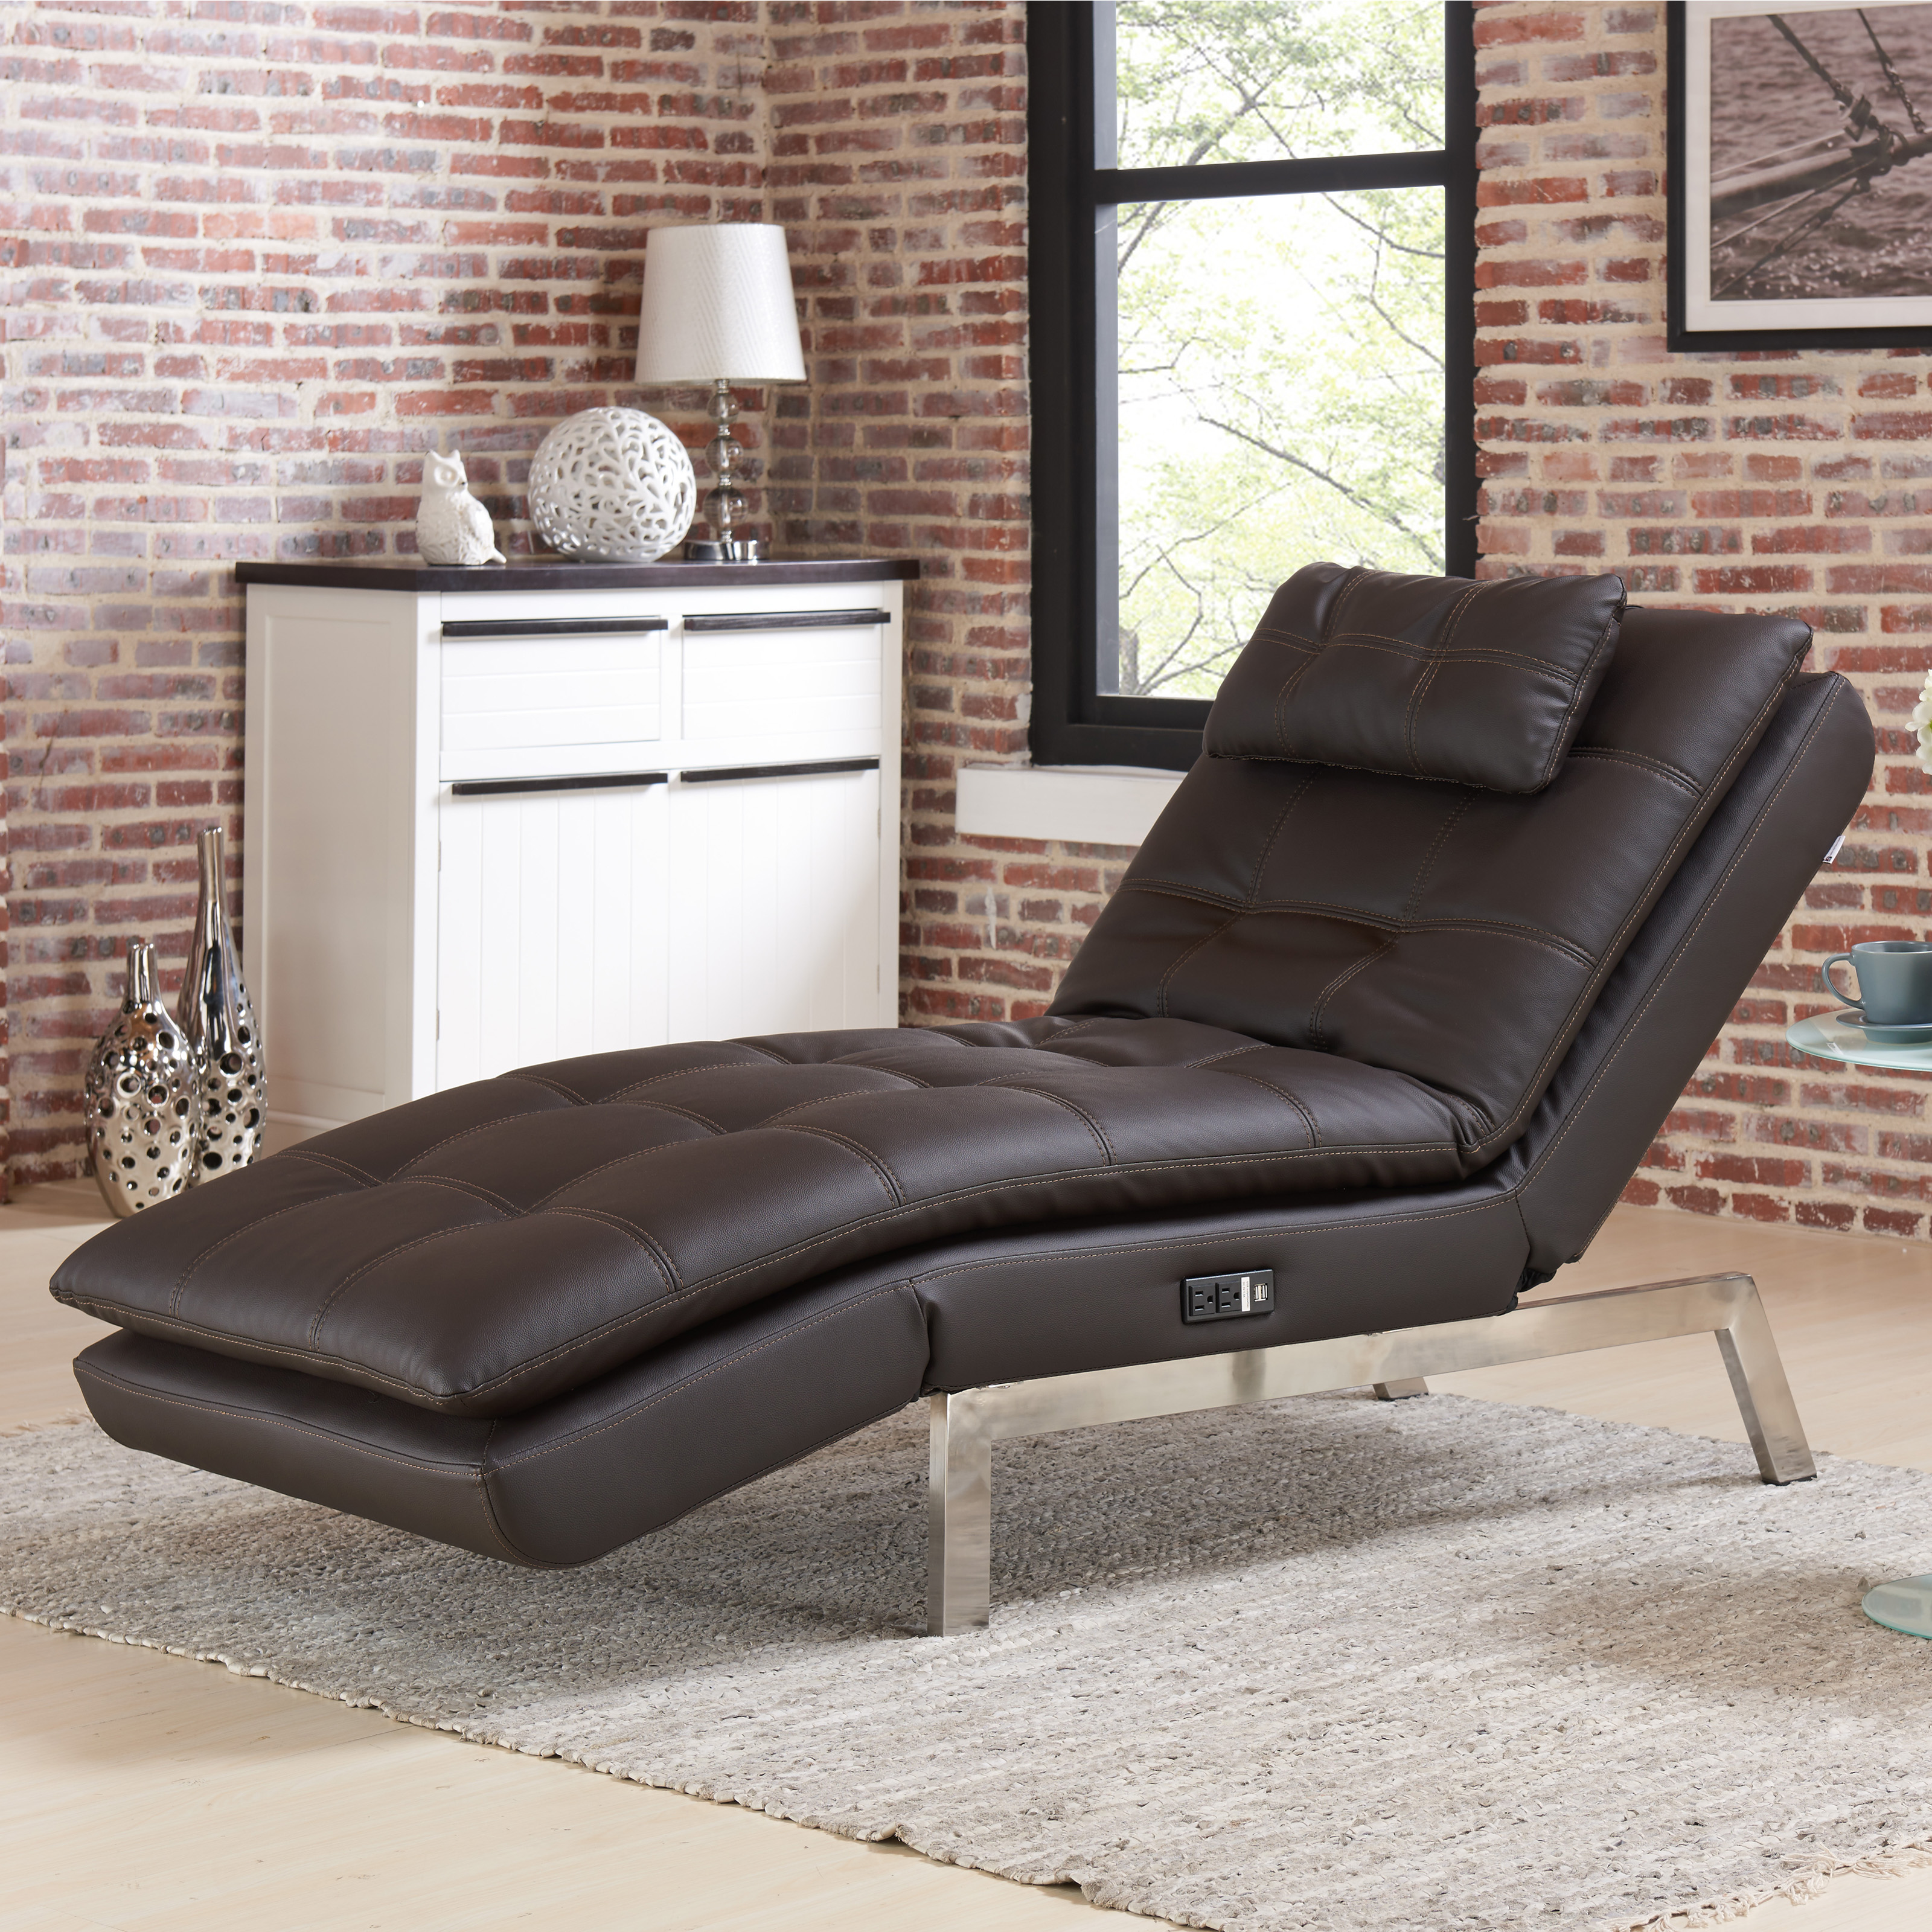 Lifestyle Solutions Arlington Convertible Chaise Lounge